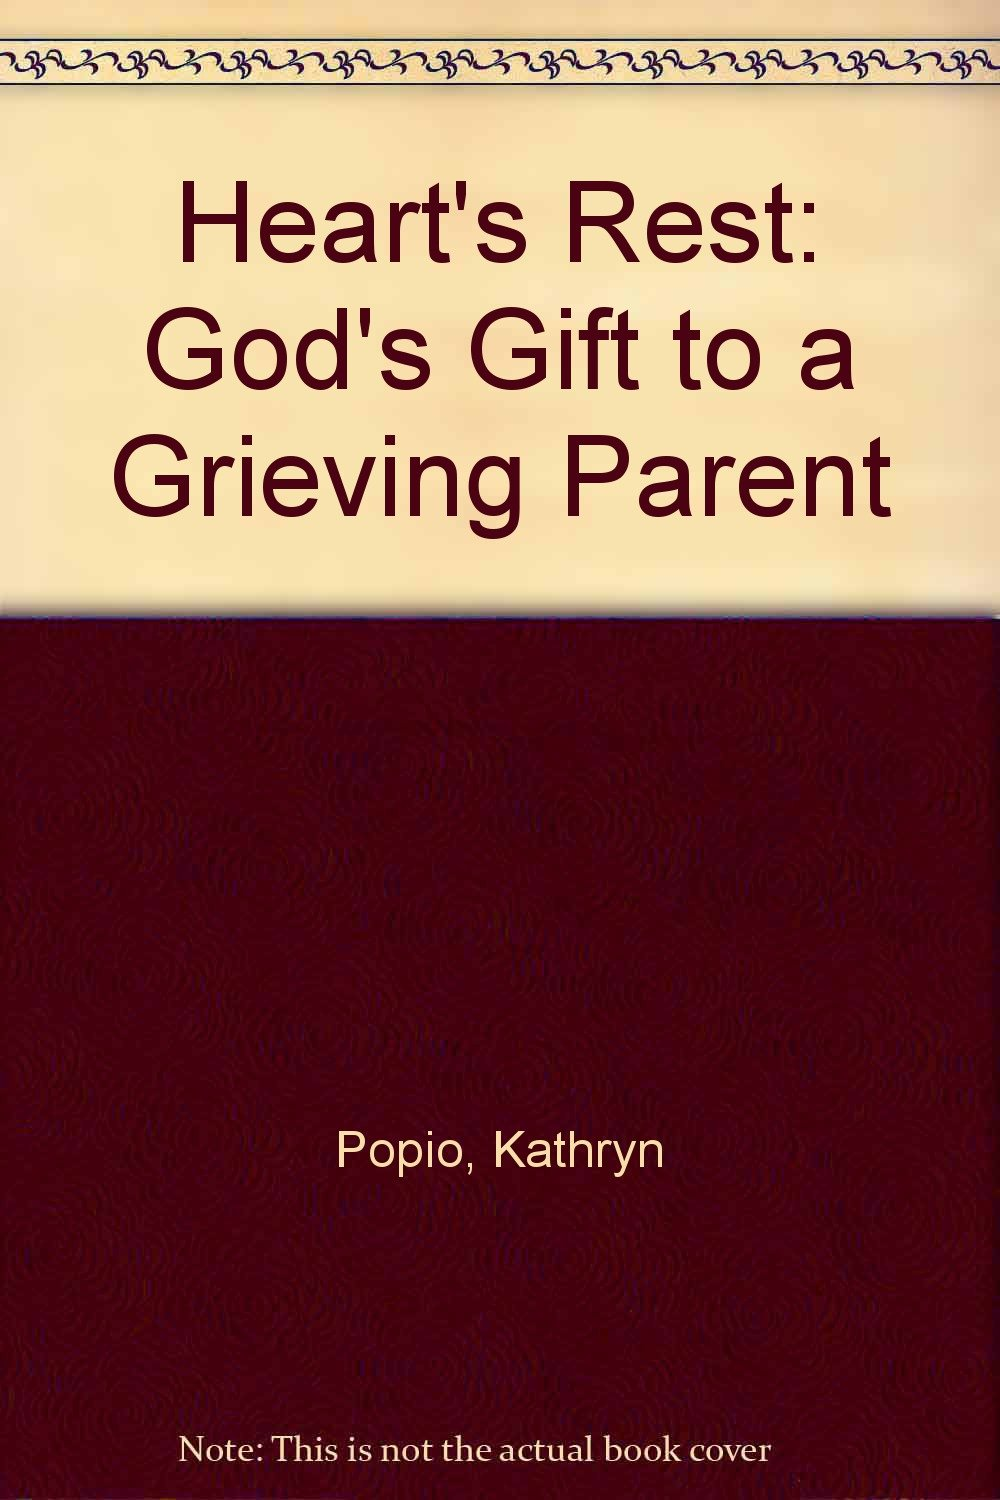 Heart's Rest: God's Gift to a Grieving Parent Paperback – Import, 1 Nov 1998